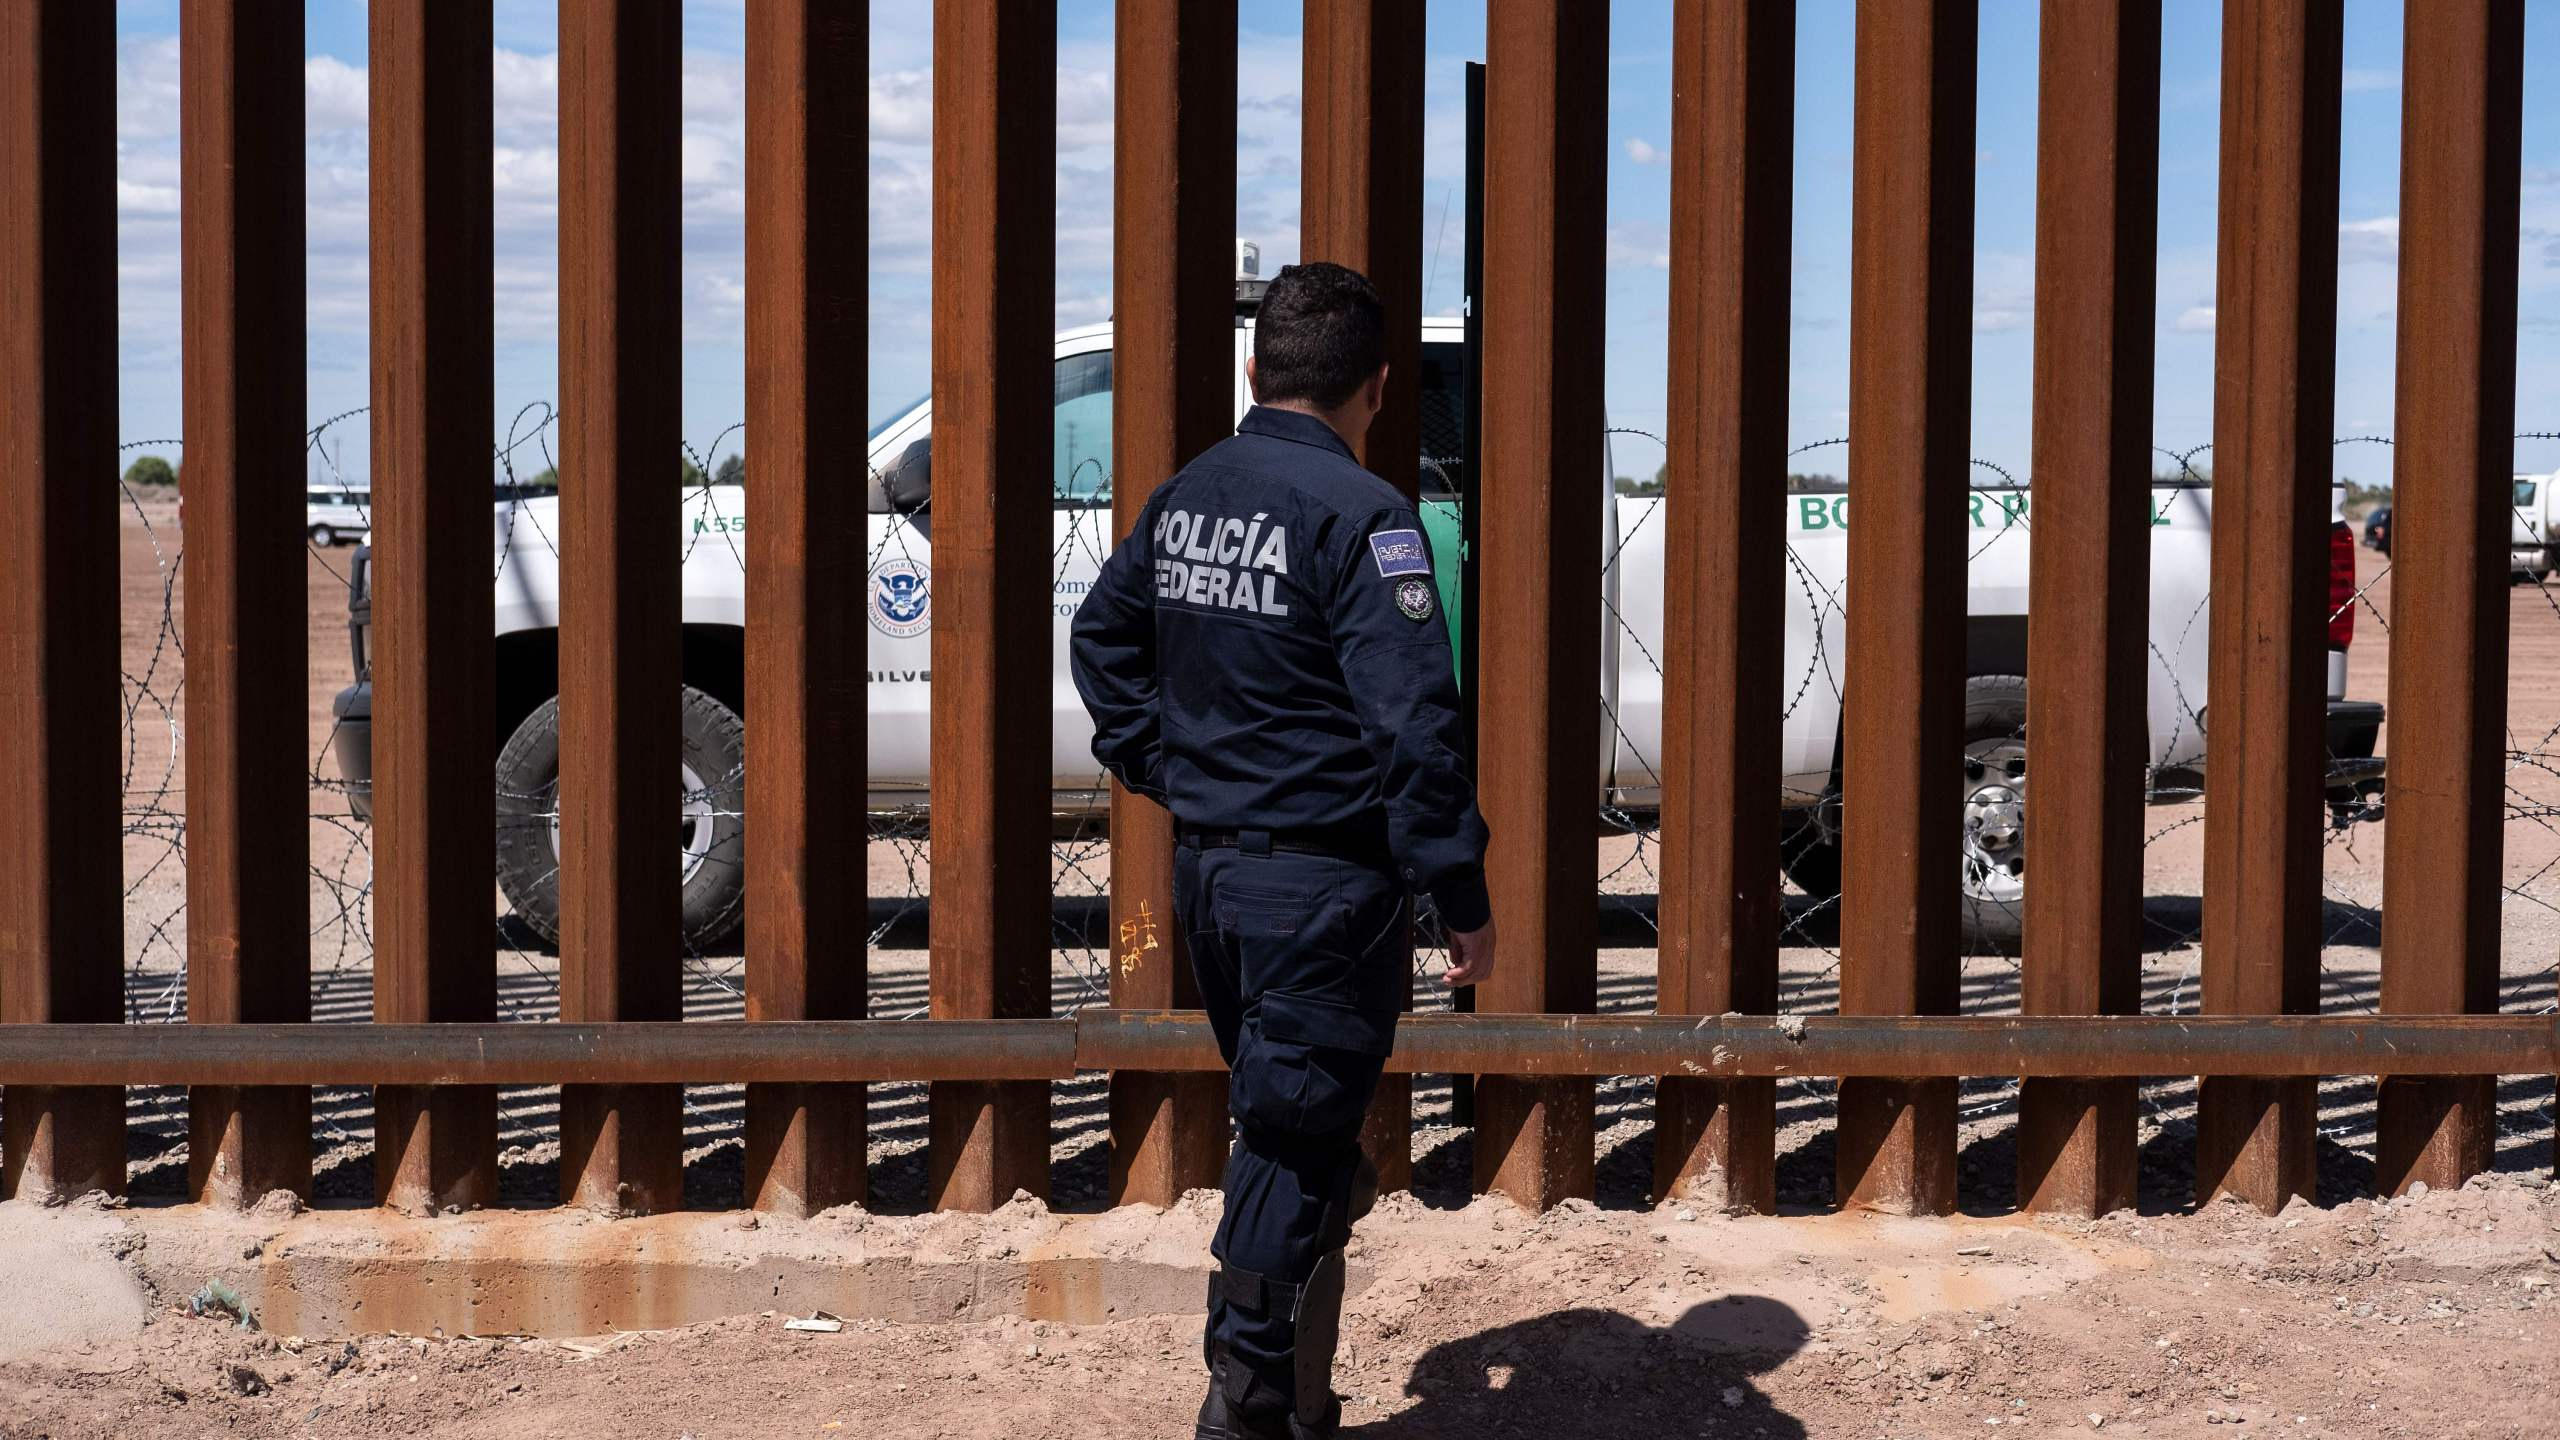 A Border patrol unit and a Mexican federal police guard stop near the U.S.-Mexico border fence in Calexico, California. (Credit: GUILLERMO ARIAS/AFP/Getty Images)